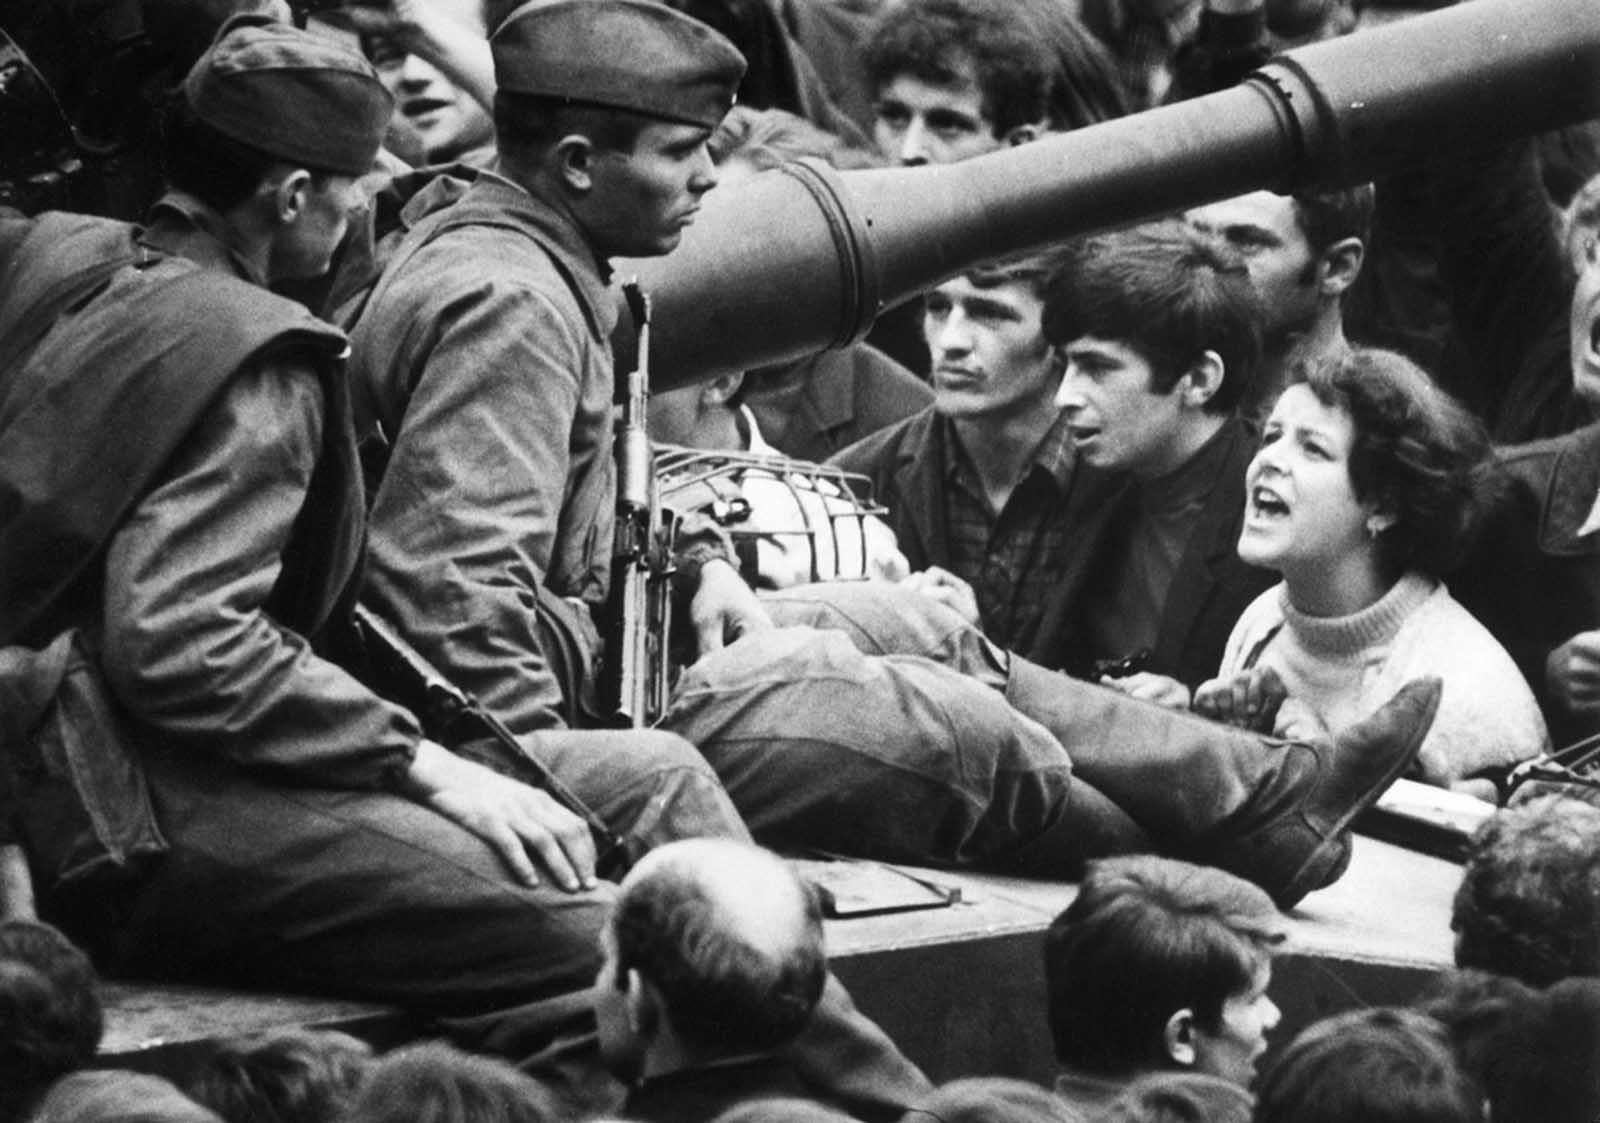 A young Czech lets her feelings be known as she shouts at Soviet soldiers sitting on tanks in the streets of Prague on August 26, 1968.